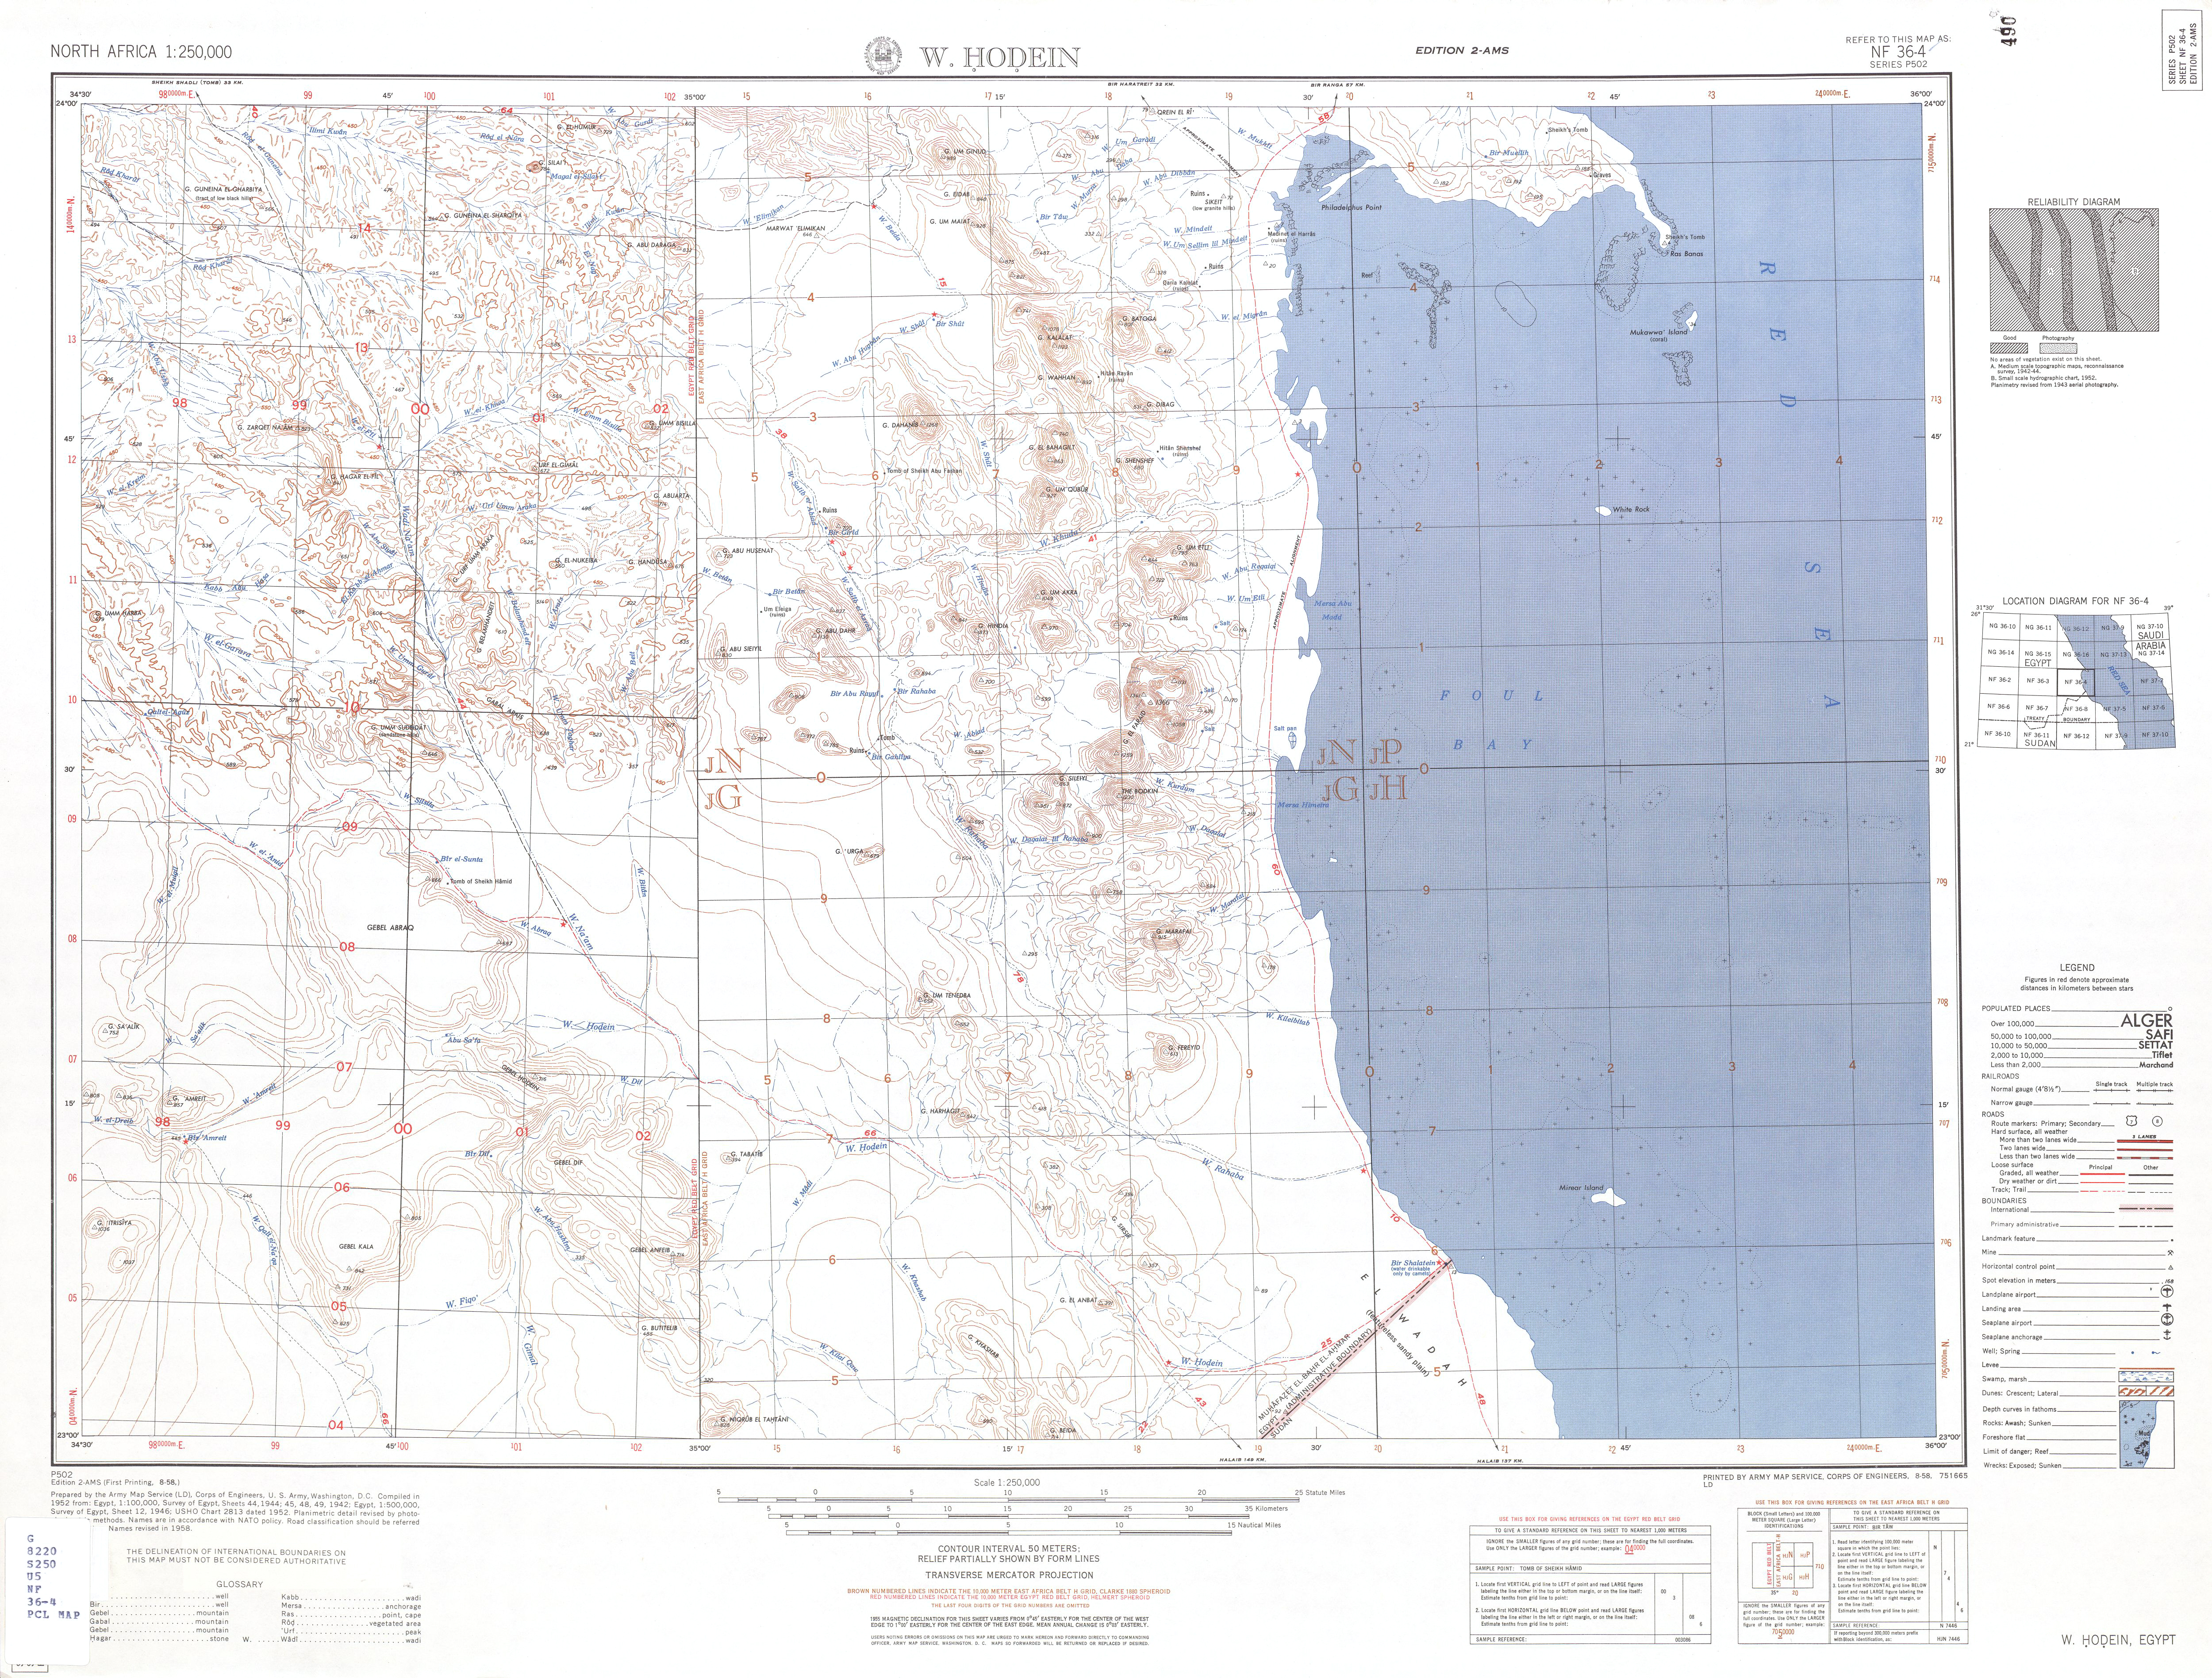 North Africa AMS Topographic Maps - Perry-Castañeda Map Collection